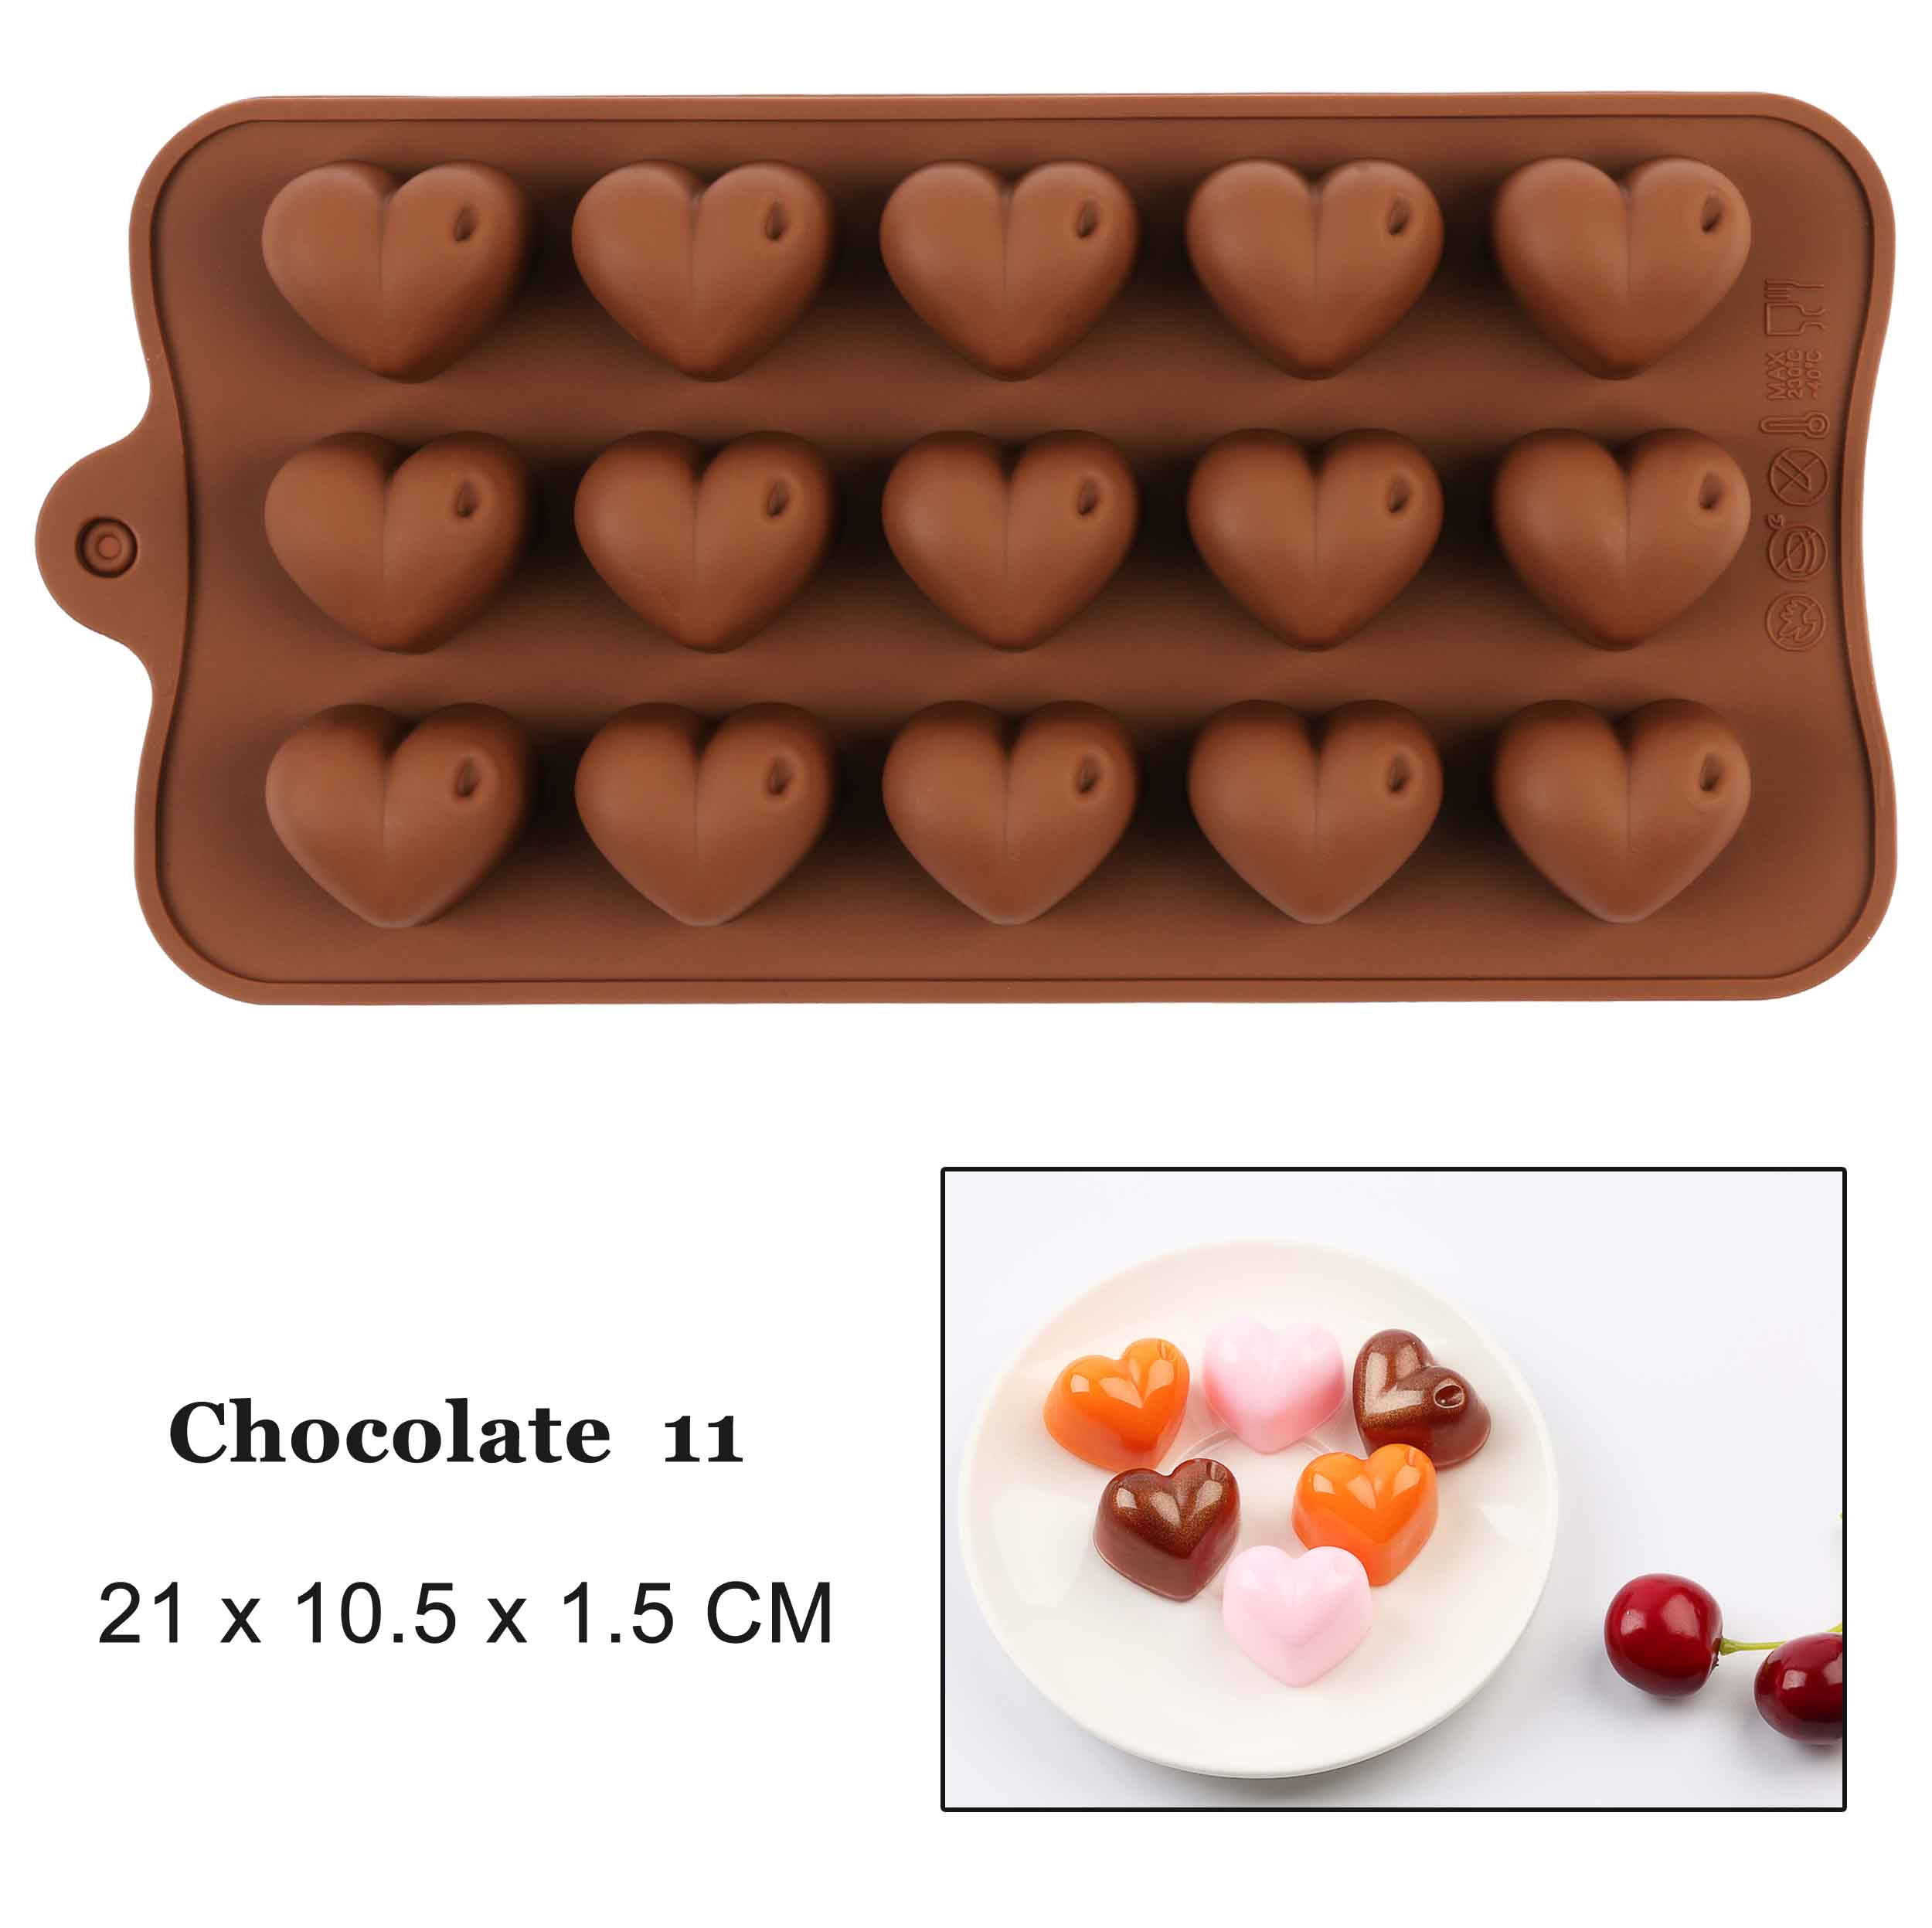 29 Shapes Silicone Baking Molds Made Of Pure Silicon Material For Jelly And Candy Mold 2